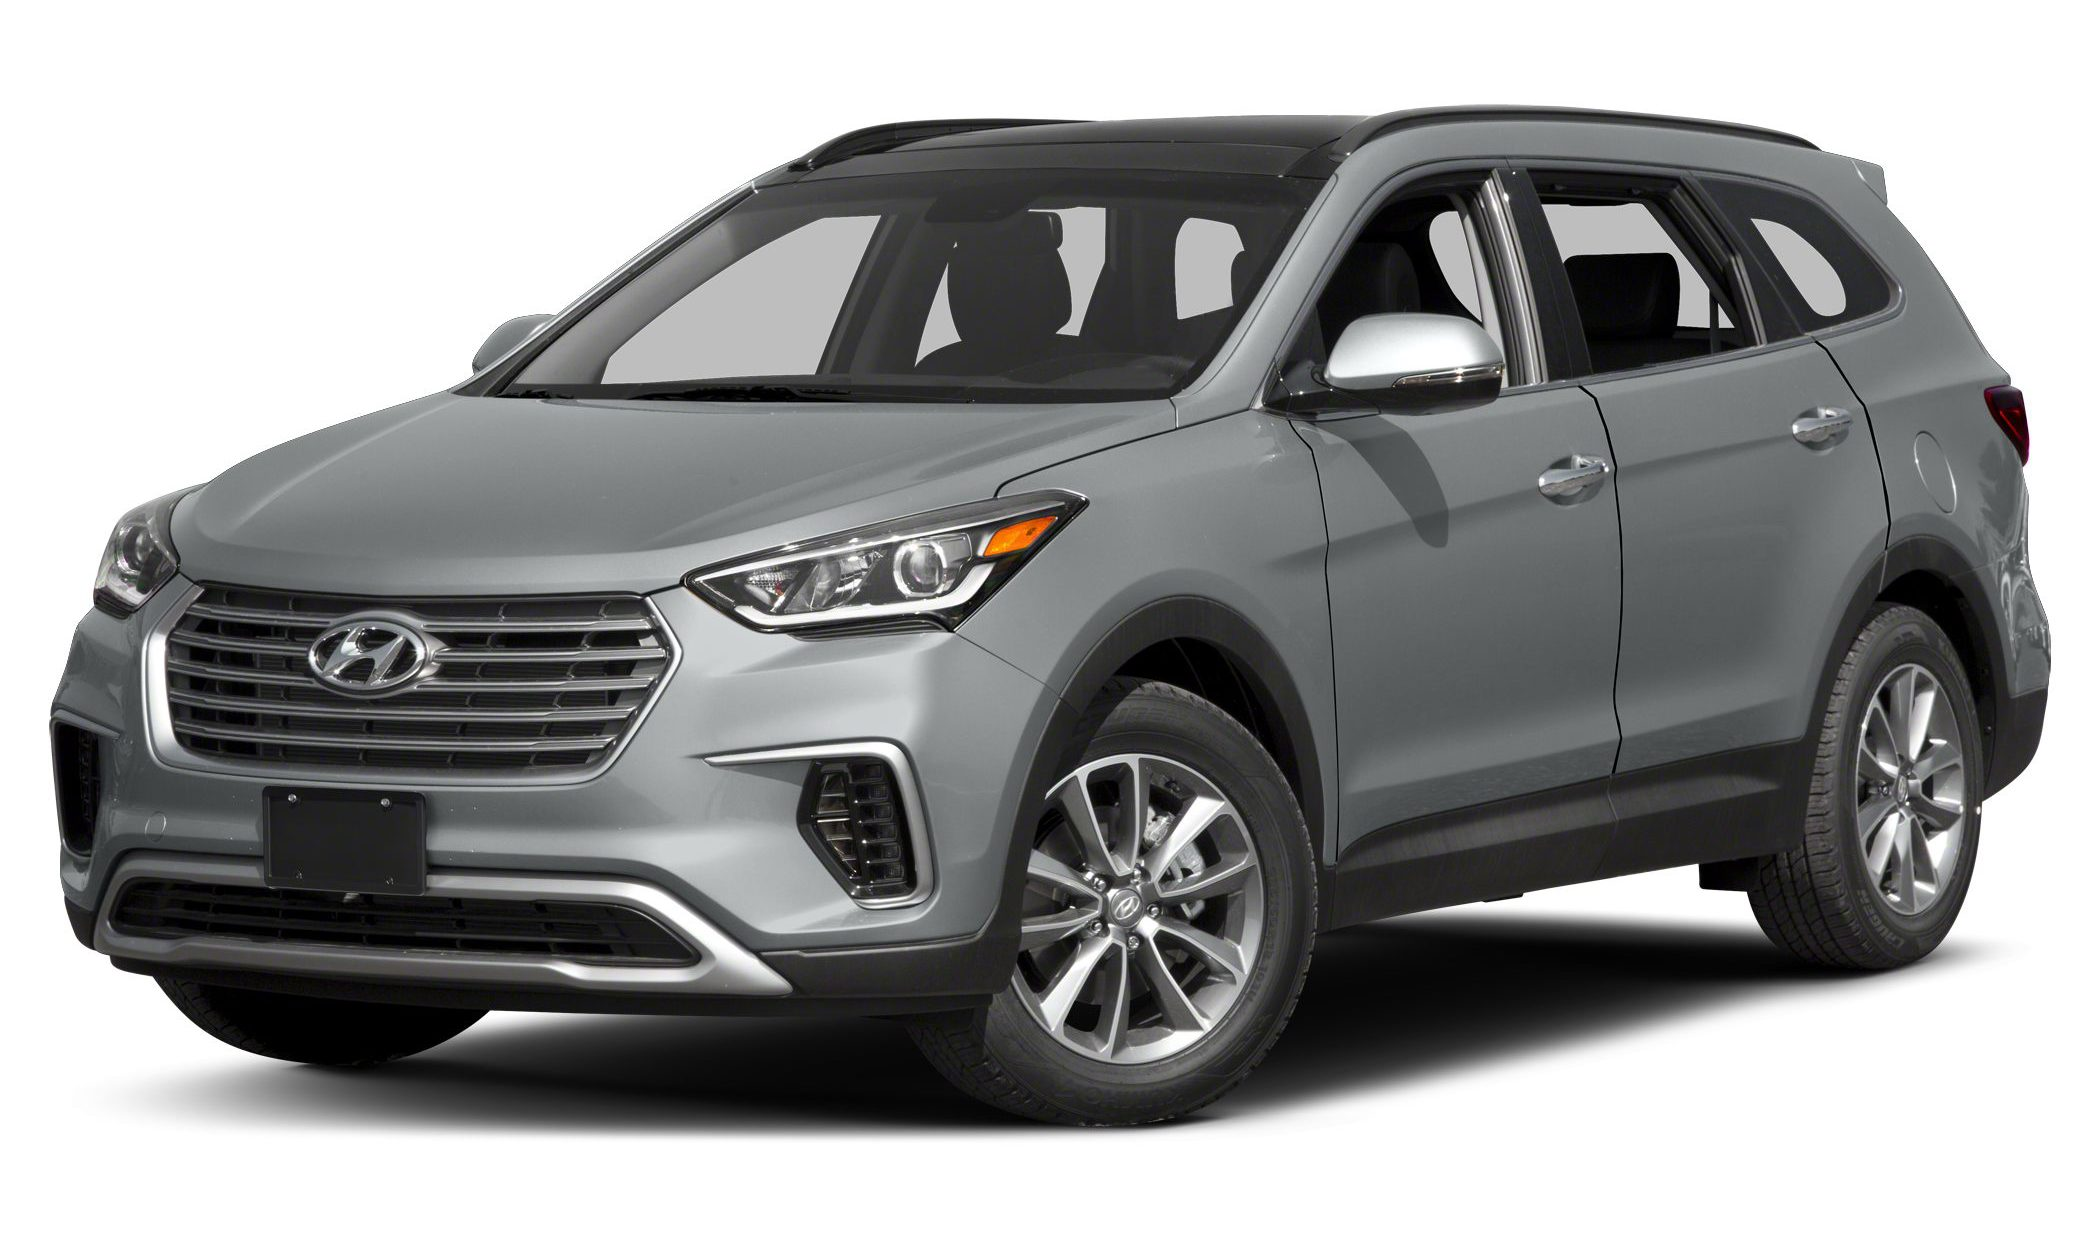 2017 hyundai santa fe 2 4l awd prices specifications in uae. Black Bedroom Furniture Sets. Home Design Ideas